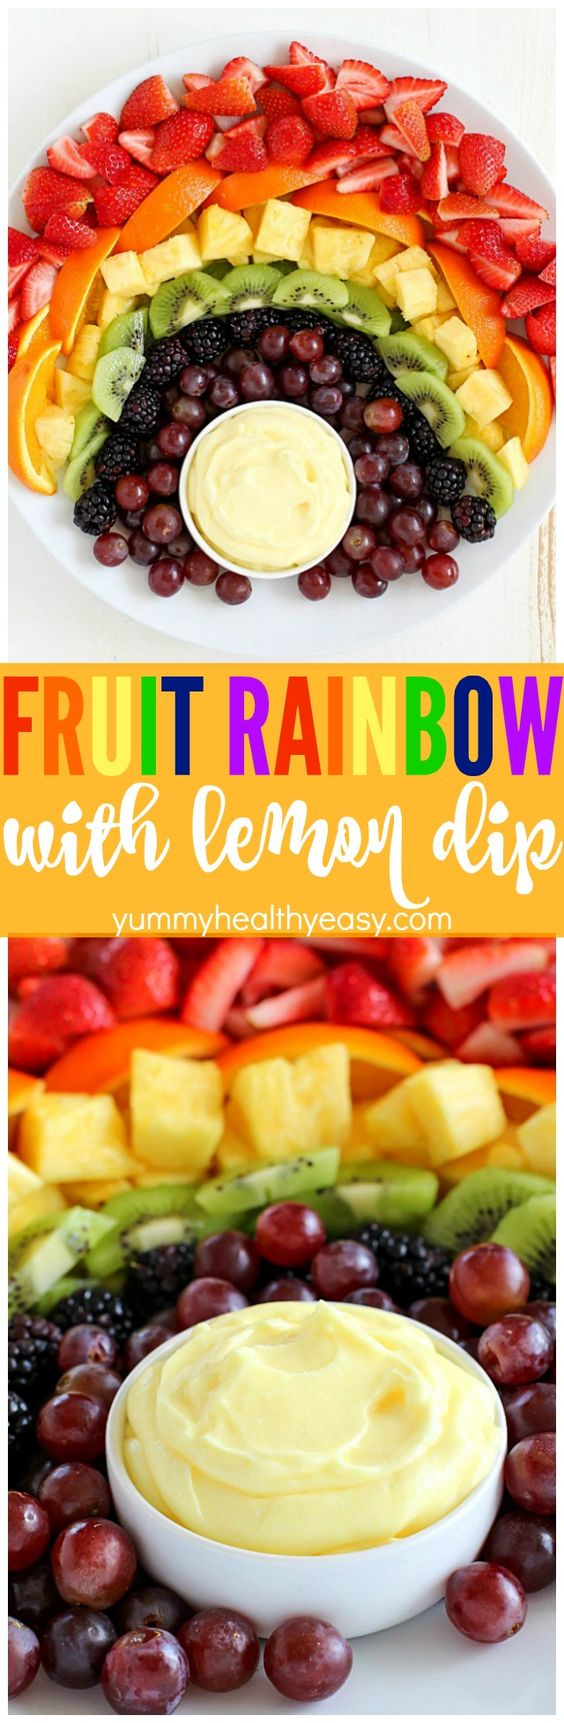 Fruit Rainbow with Lemon Dip: